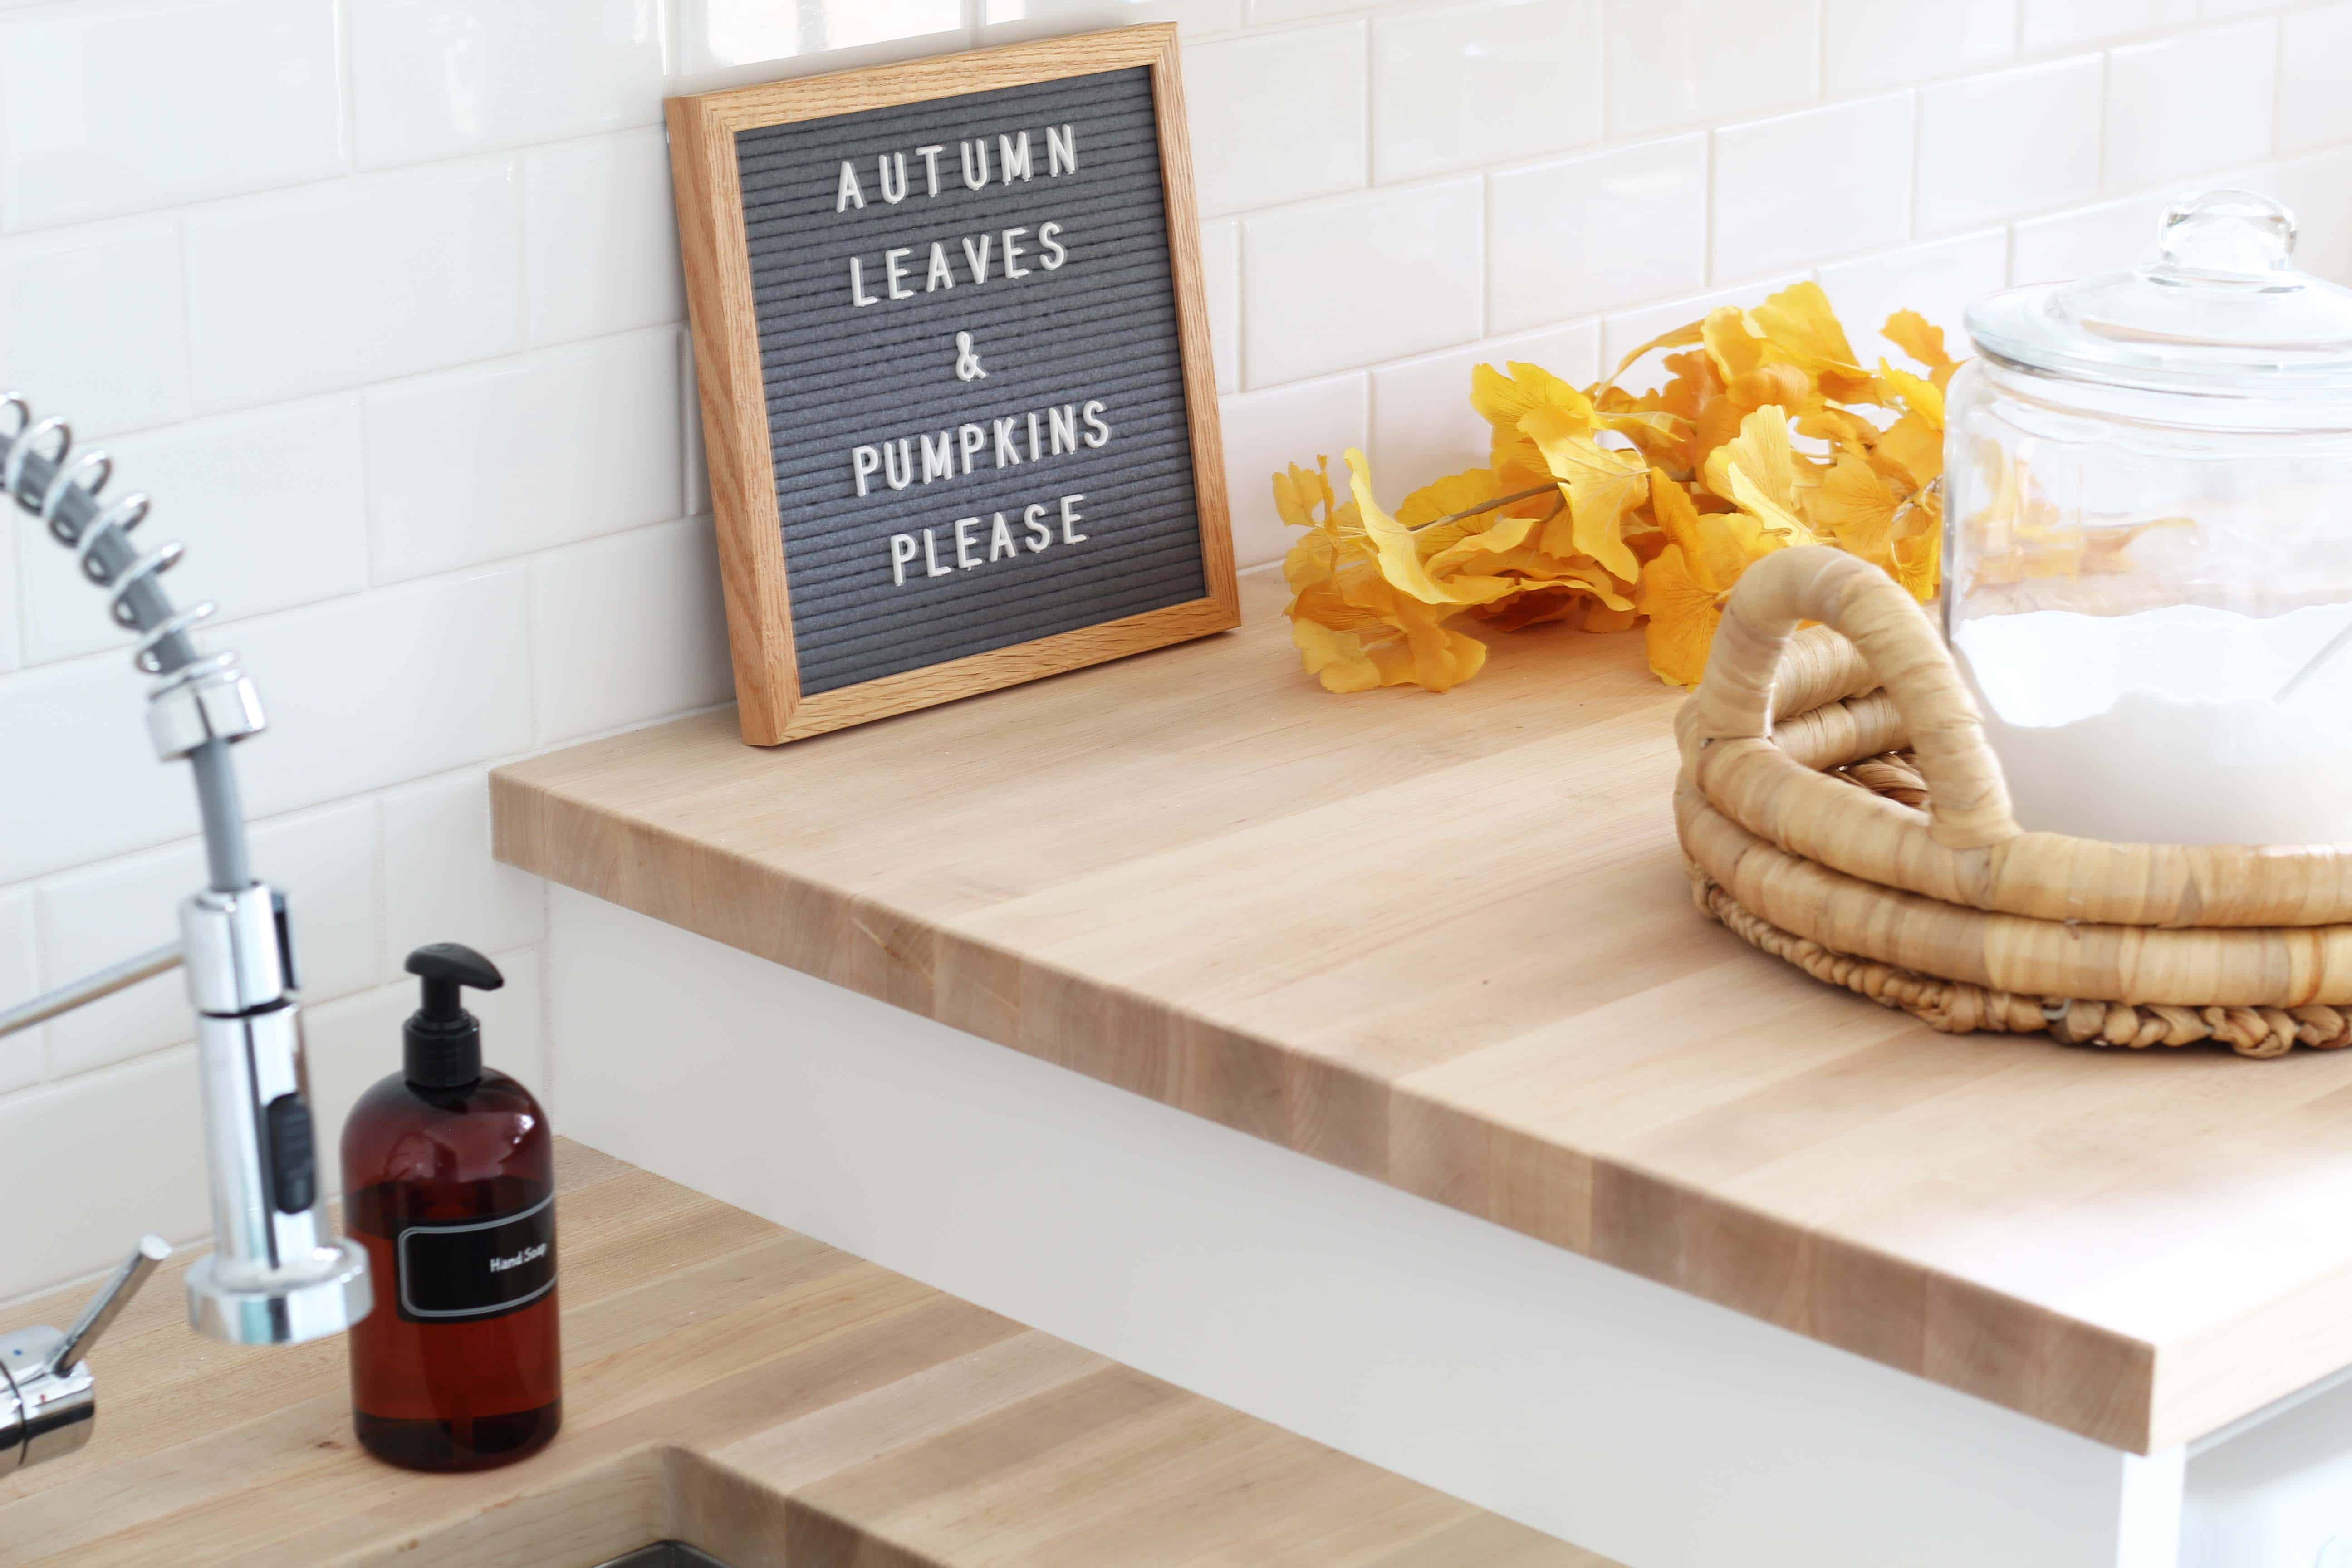 letterfold letterboard, amber soap dispenser bottle, fall gingko leaves, laundry room with butcher block counters